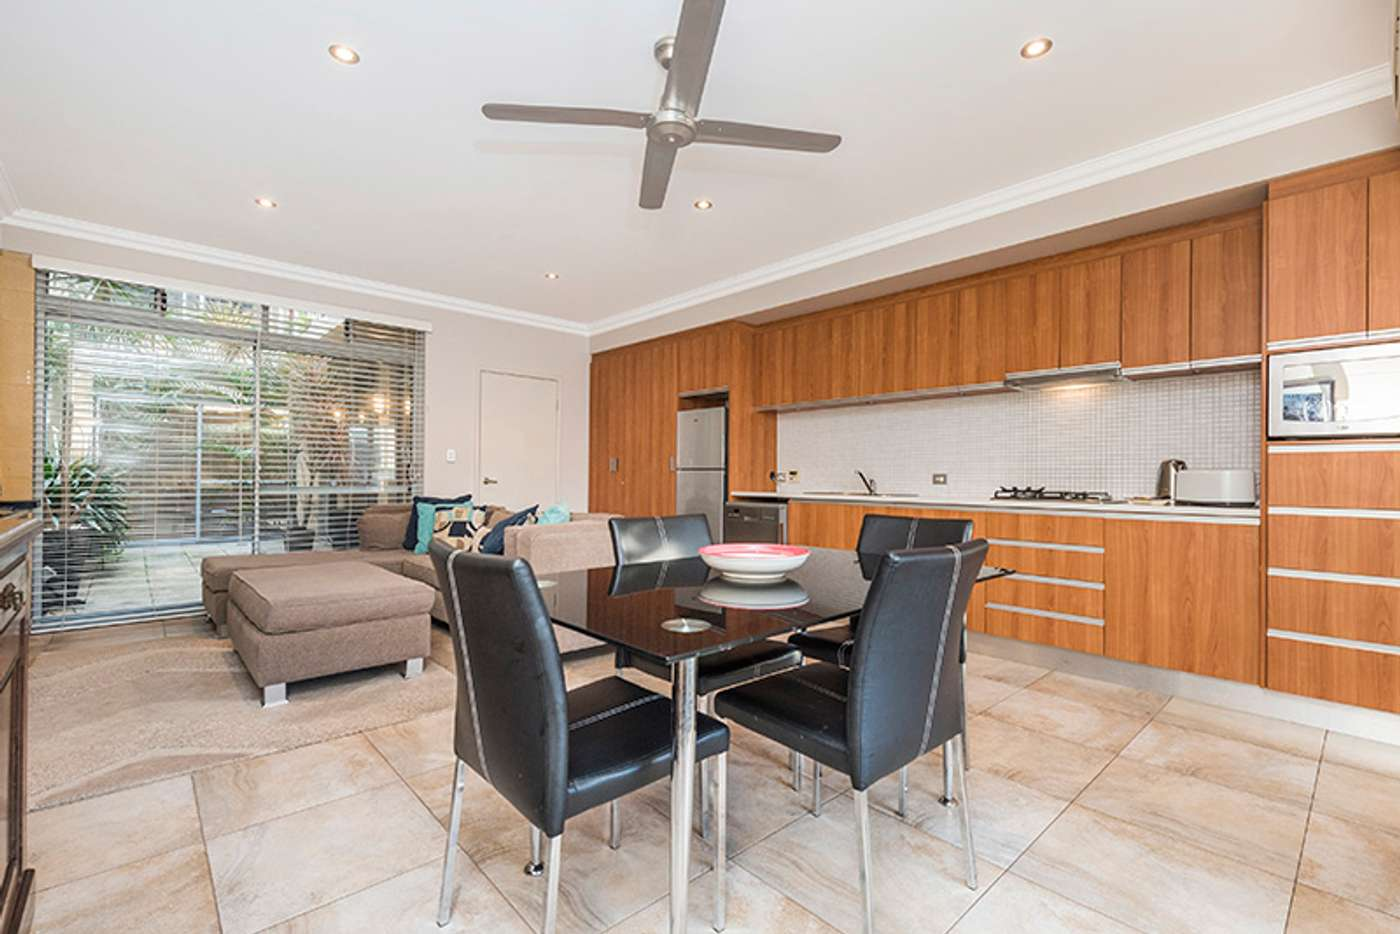 Sixth view of Homely apartment listing, 24 Macarthur Street, Cottesloe WA 6011